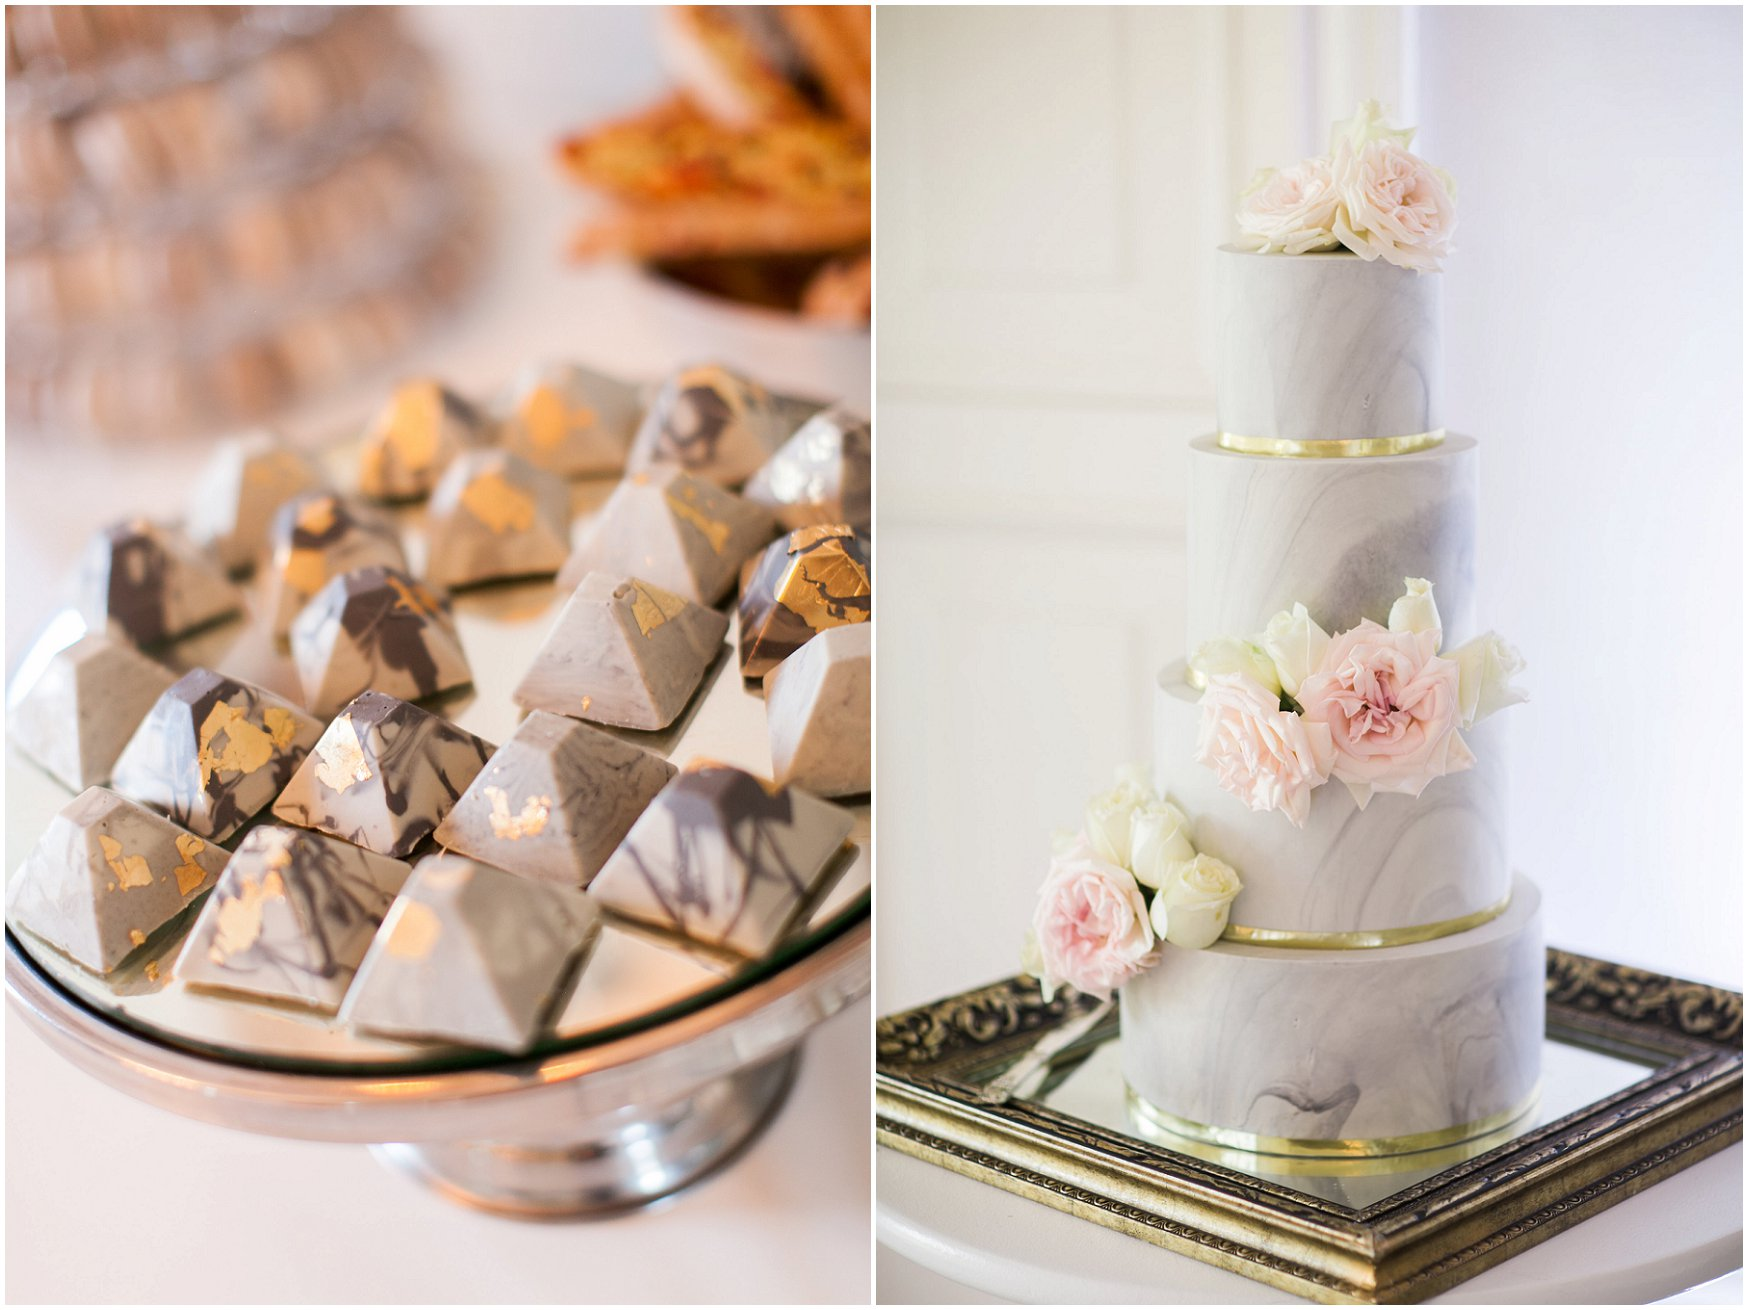 marble wedding desserts and cake